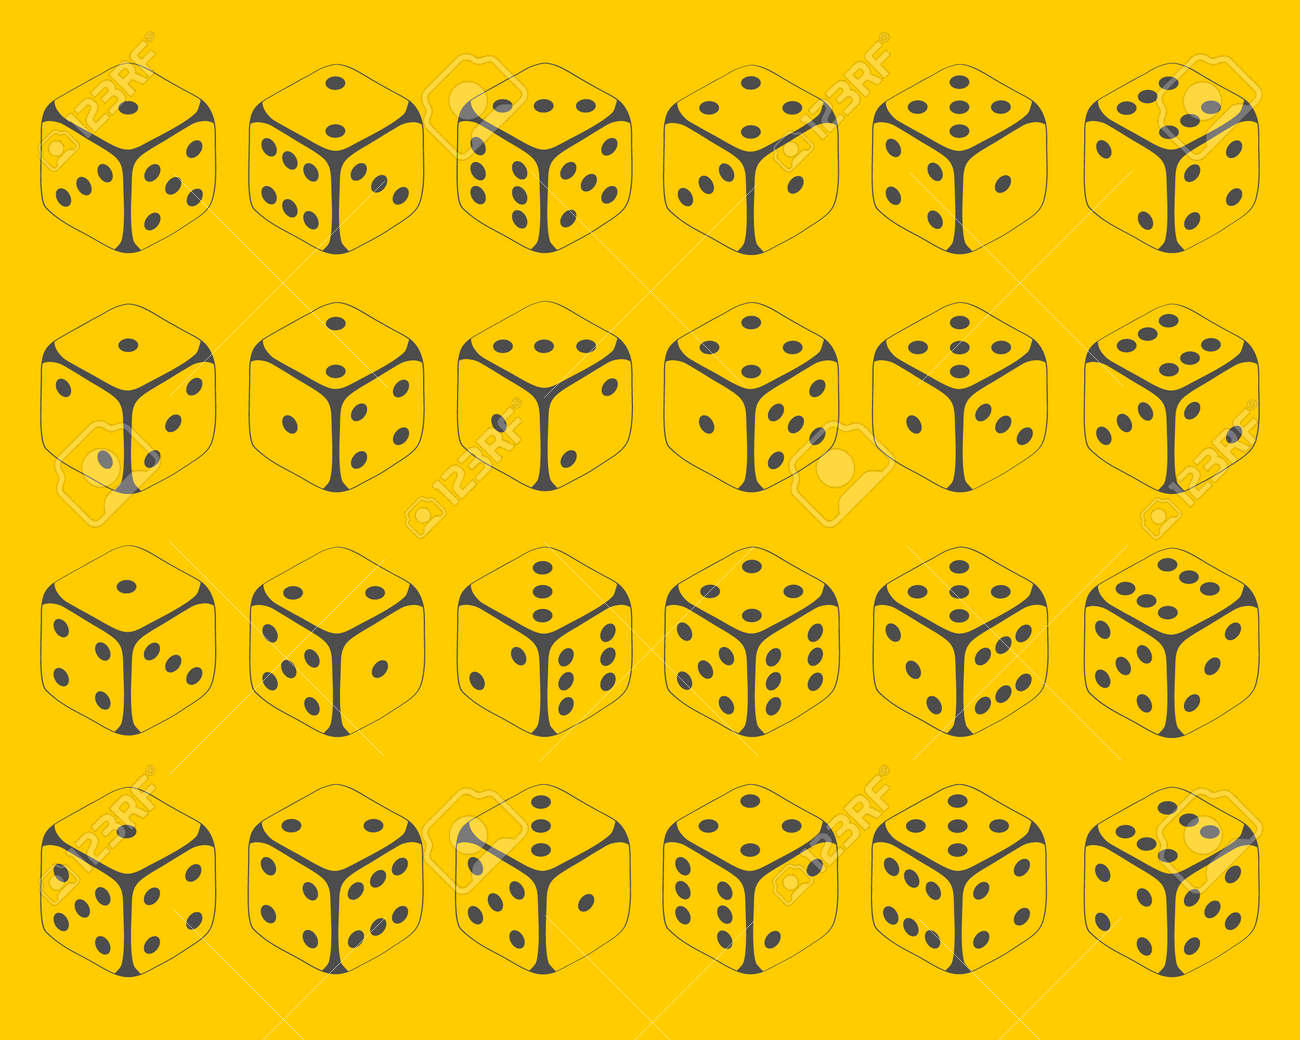 Dice. Set of dice icons on a yellow background in isometric illustration. Vector illustration. Vector. - 162890970